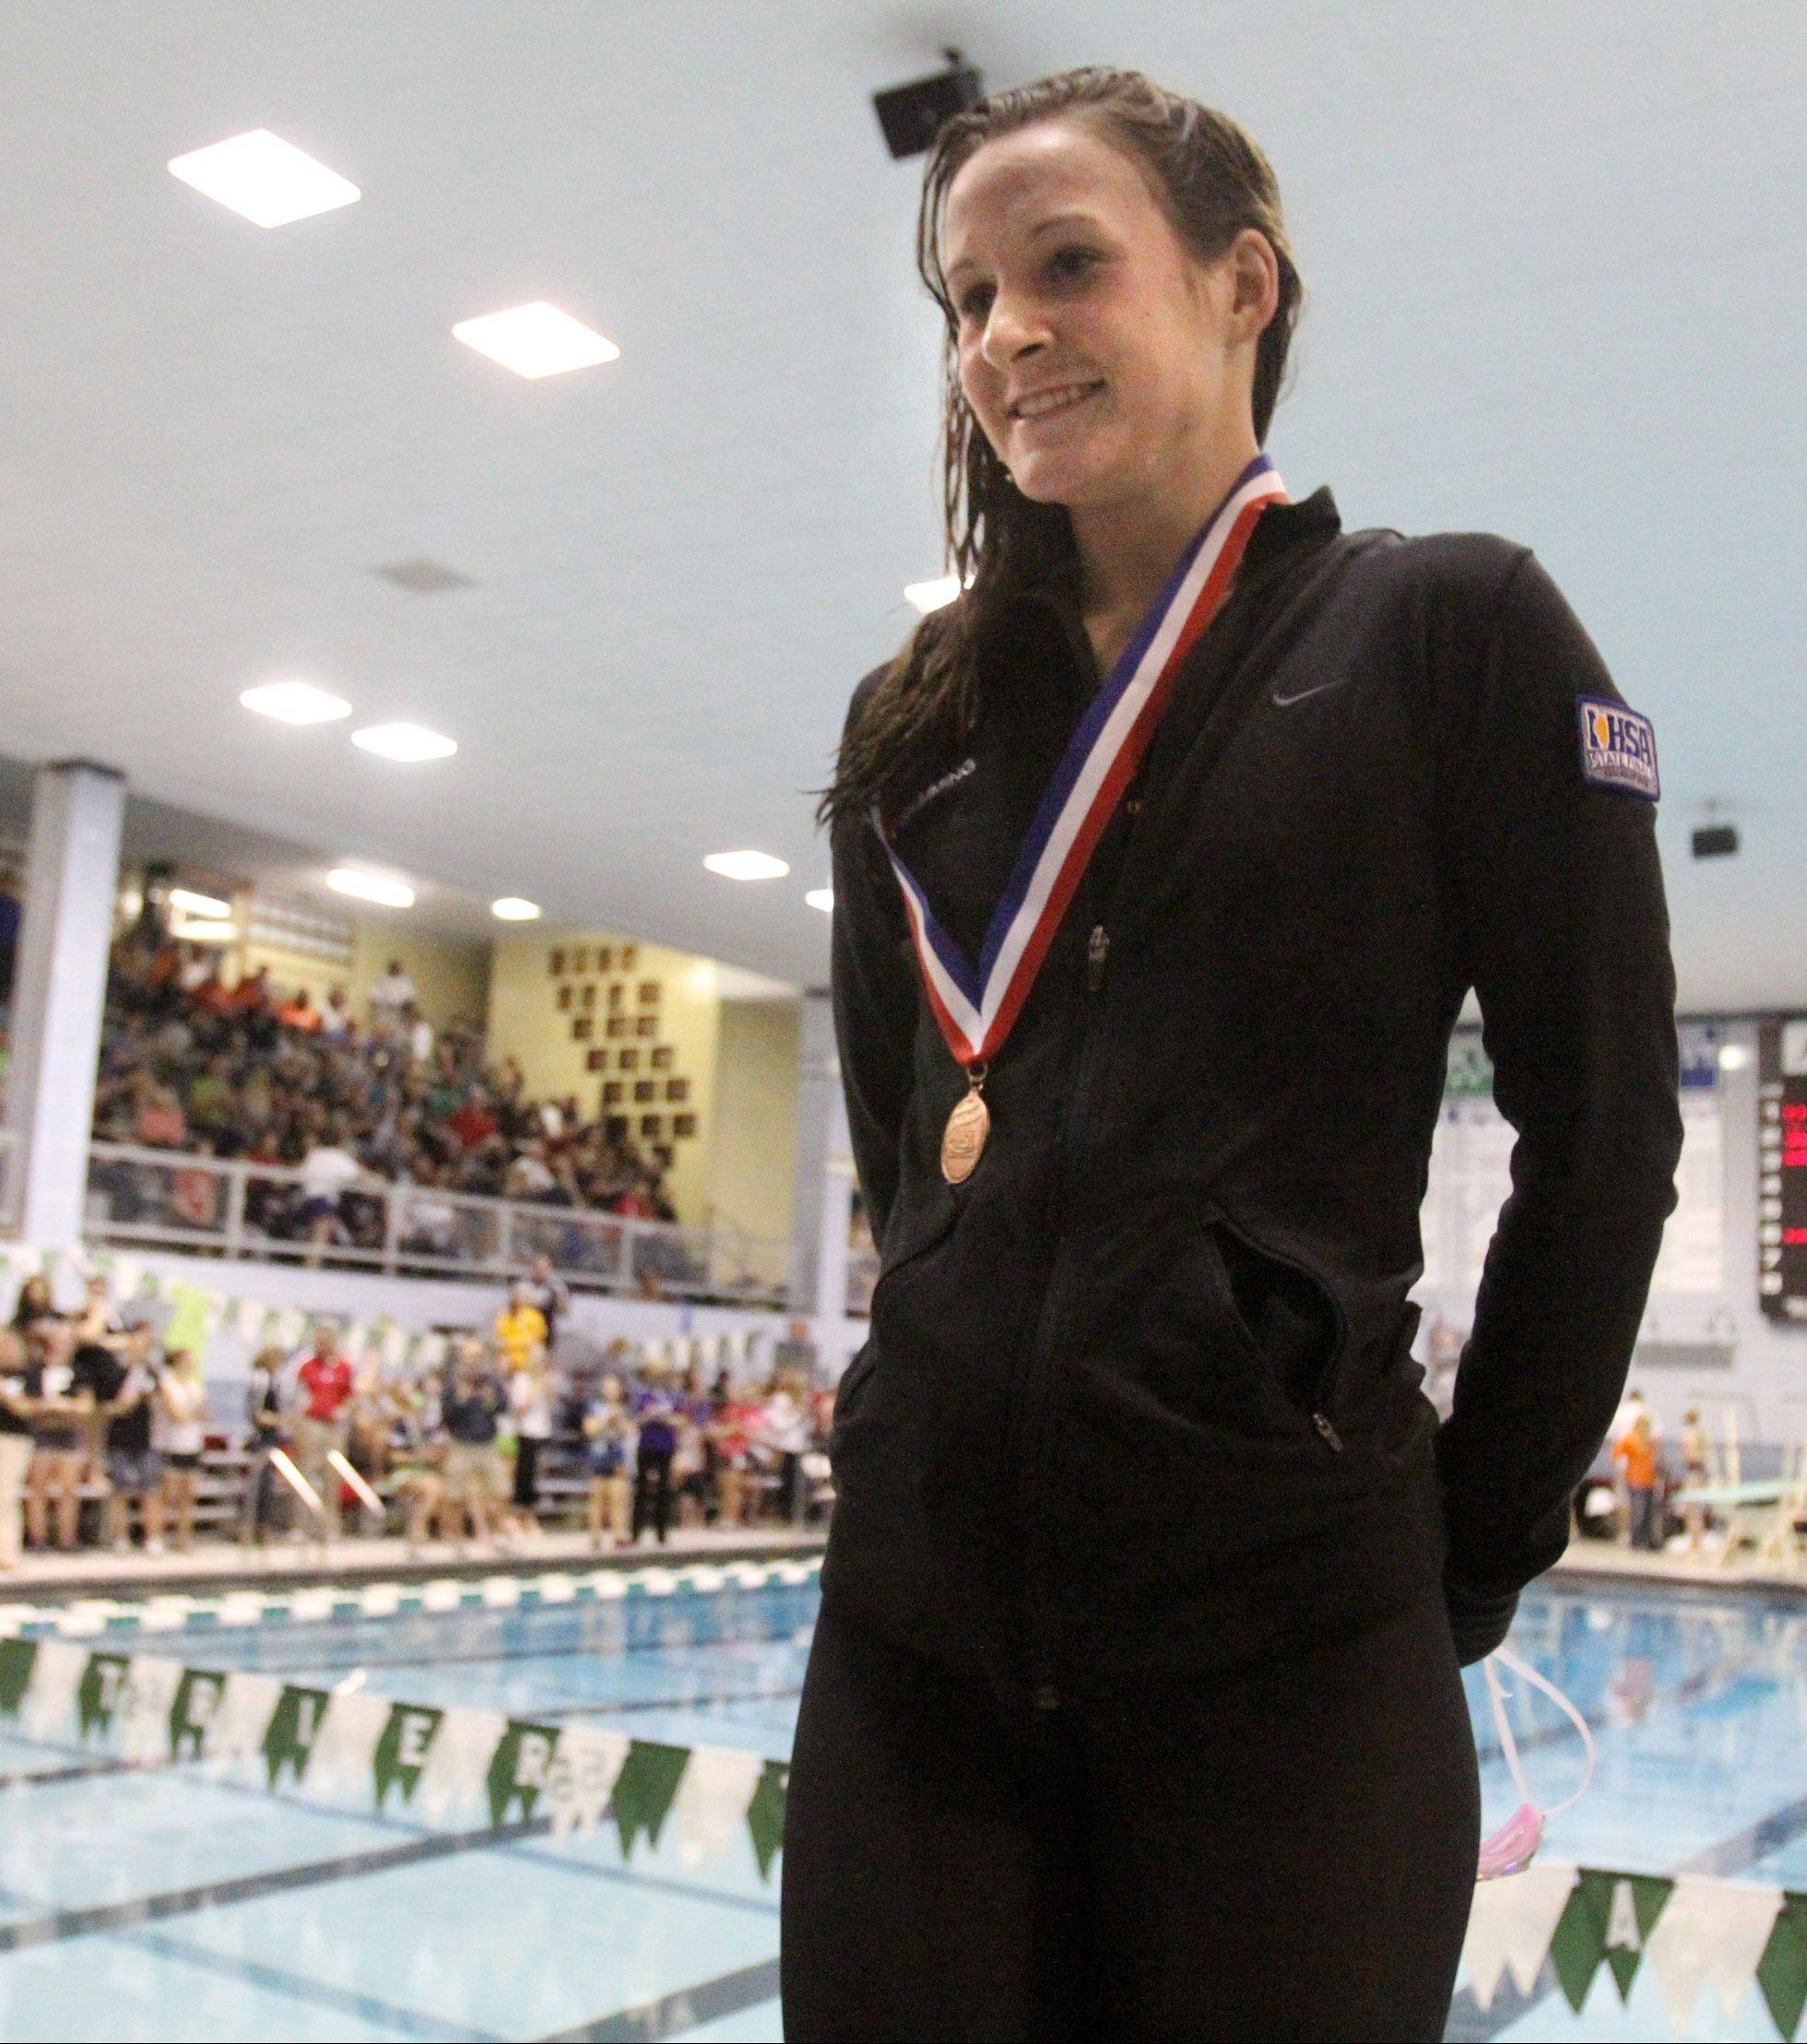 Prairie Ridge's Marisa Barton placed third in the 50-yard freestyle at the state championships in Winnetka last fall. She's back in action for her senior year.